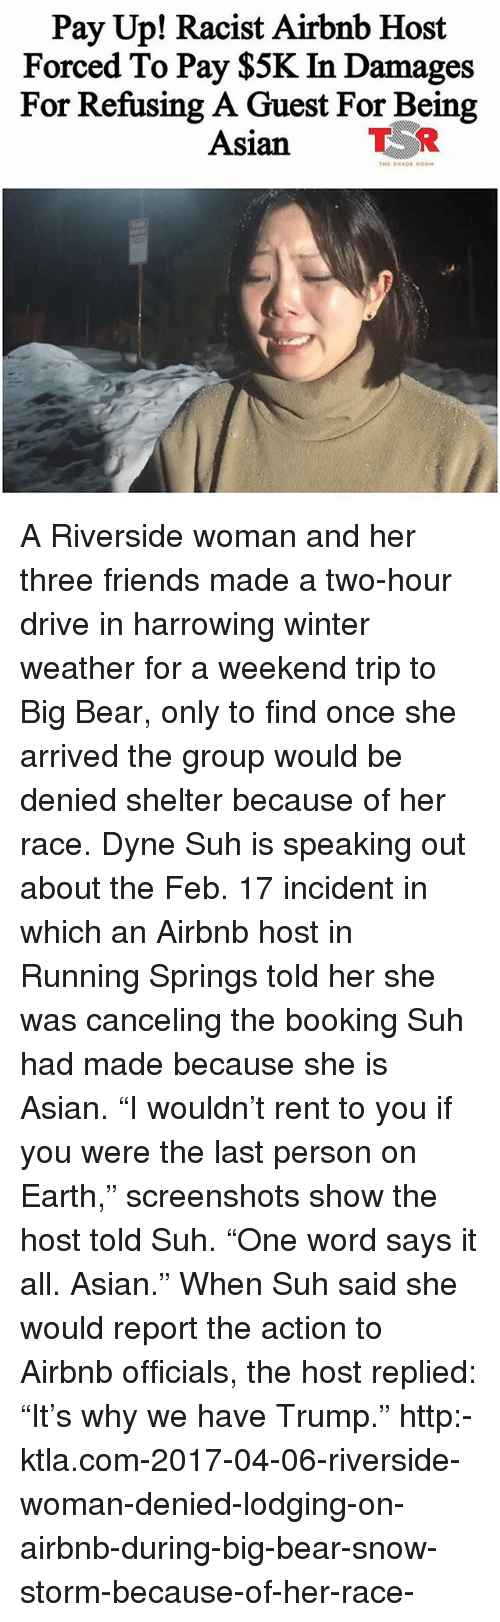 "Ktla: Pay Up! Racist Airbnb Host  Forced To Pay $5K In Damages  For Refusing A Guest For Being  Asian TR A Riverside woman and her three friends made a two-hour drive in harrowing winter weather for a weekend trip to Big Bear, only to find once she arrived the group would be denied shelter because of her race. Dyne Suh is speaking out about the Feb. 17 incident in which an Airbnb host in Running Springs told her she was canceling the booking Suh had made because she is Asian. ""I wouldn't rent to you if you were the last person on Earth,"" screenshots show the host told Suh. ""One word says it all. Asian."" When Suh said she would report the action to Airbnb officials, the host replied: ""It's why we have Trump."" http:-ktla.com-2017-04-06-riverside-woman-denied-lodging-on-airbnb-during-big-bear-snow-storm-because-of-her-race-"